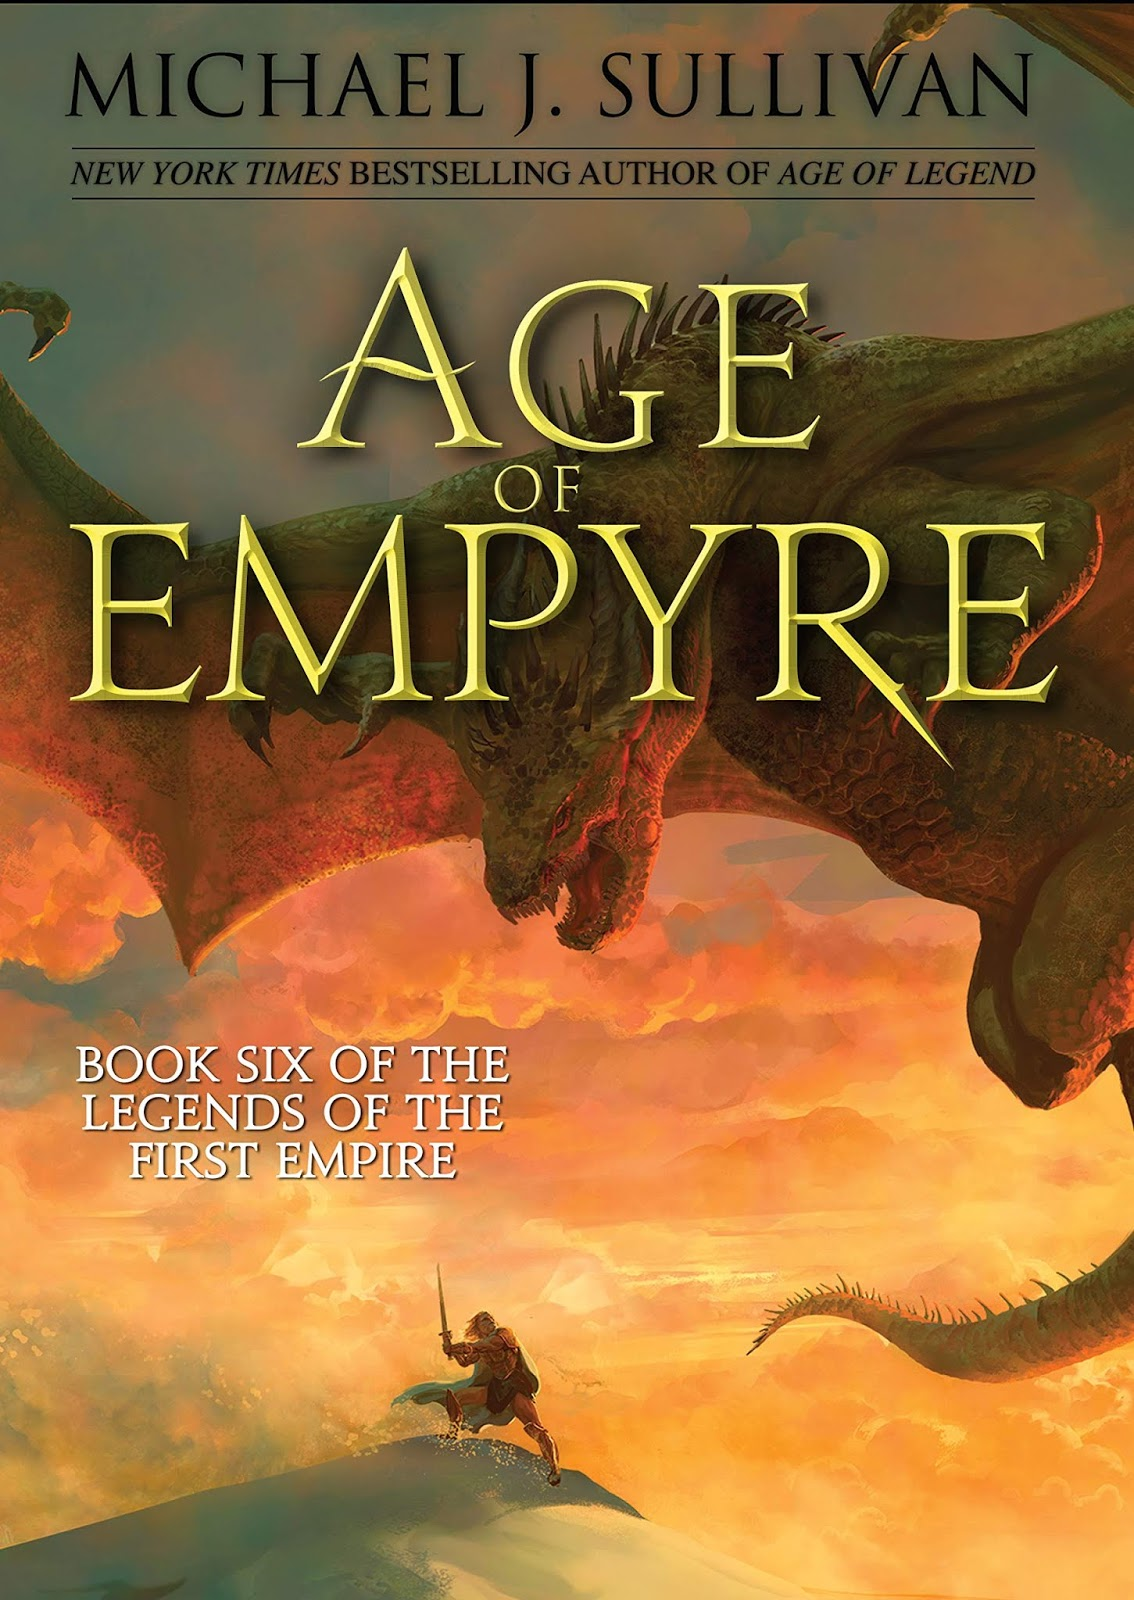 Age of Empyre by Michael J. Sullivan